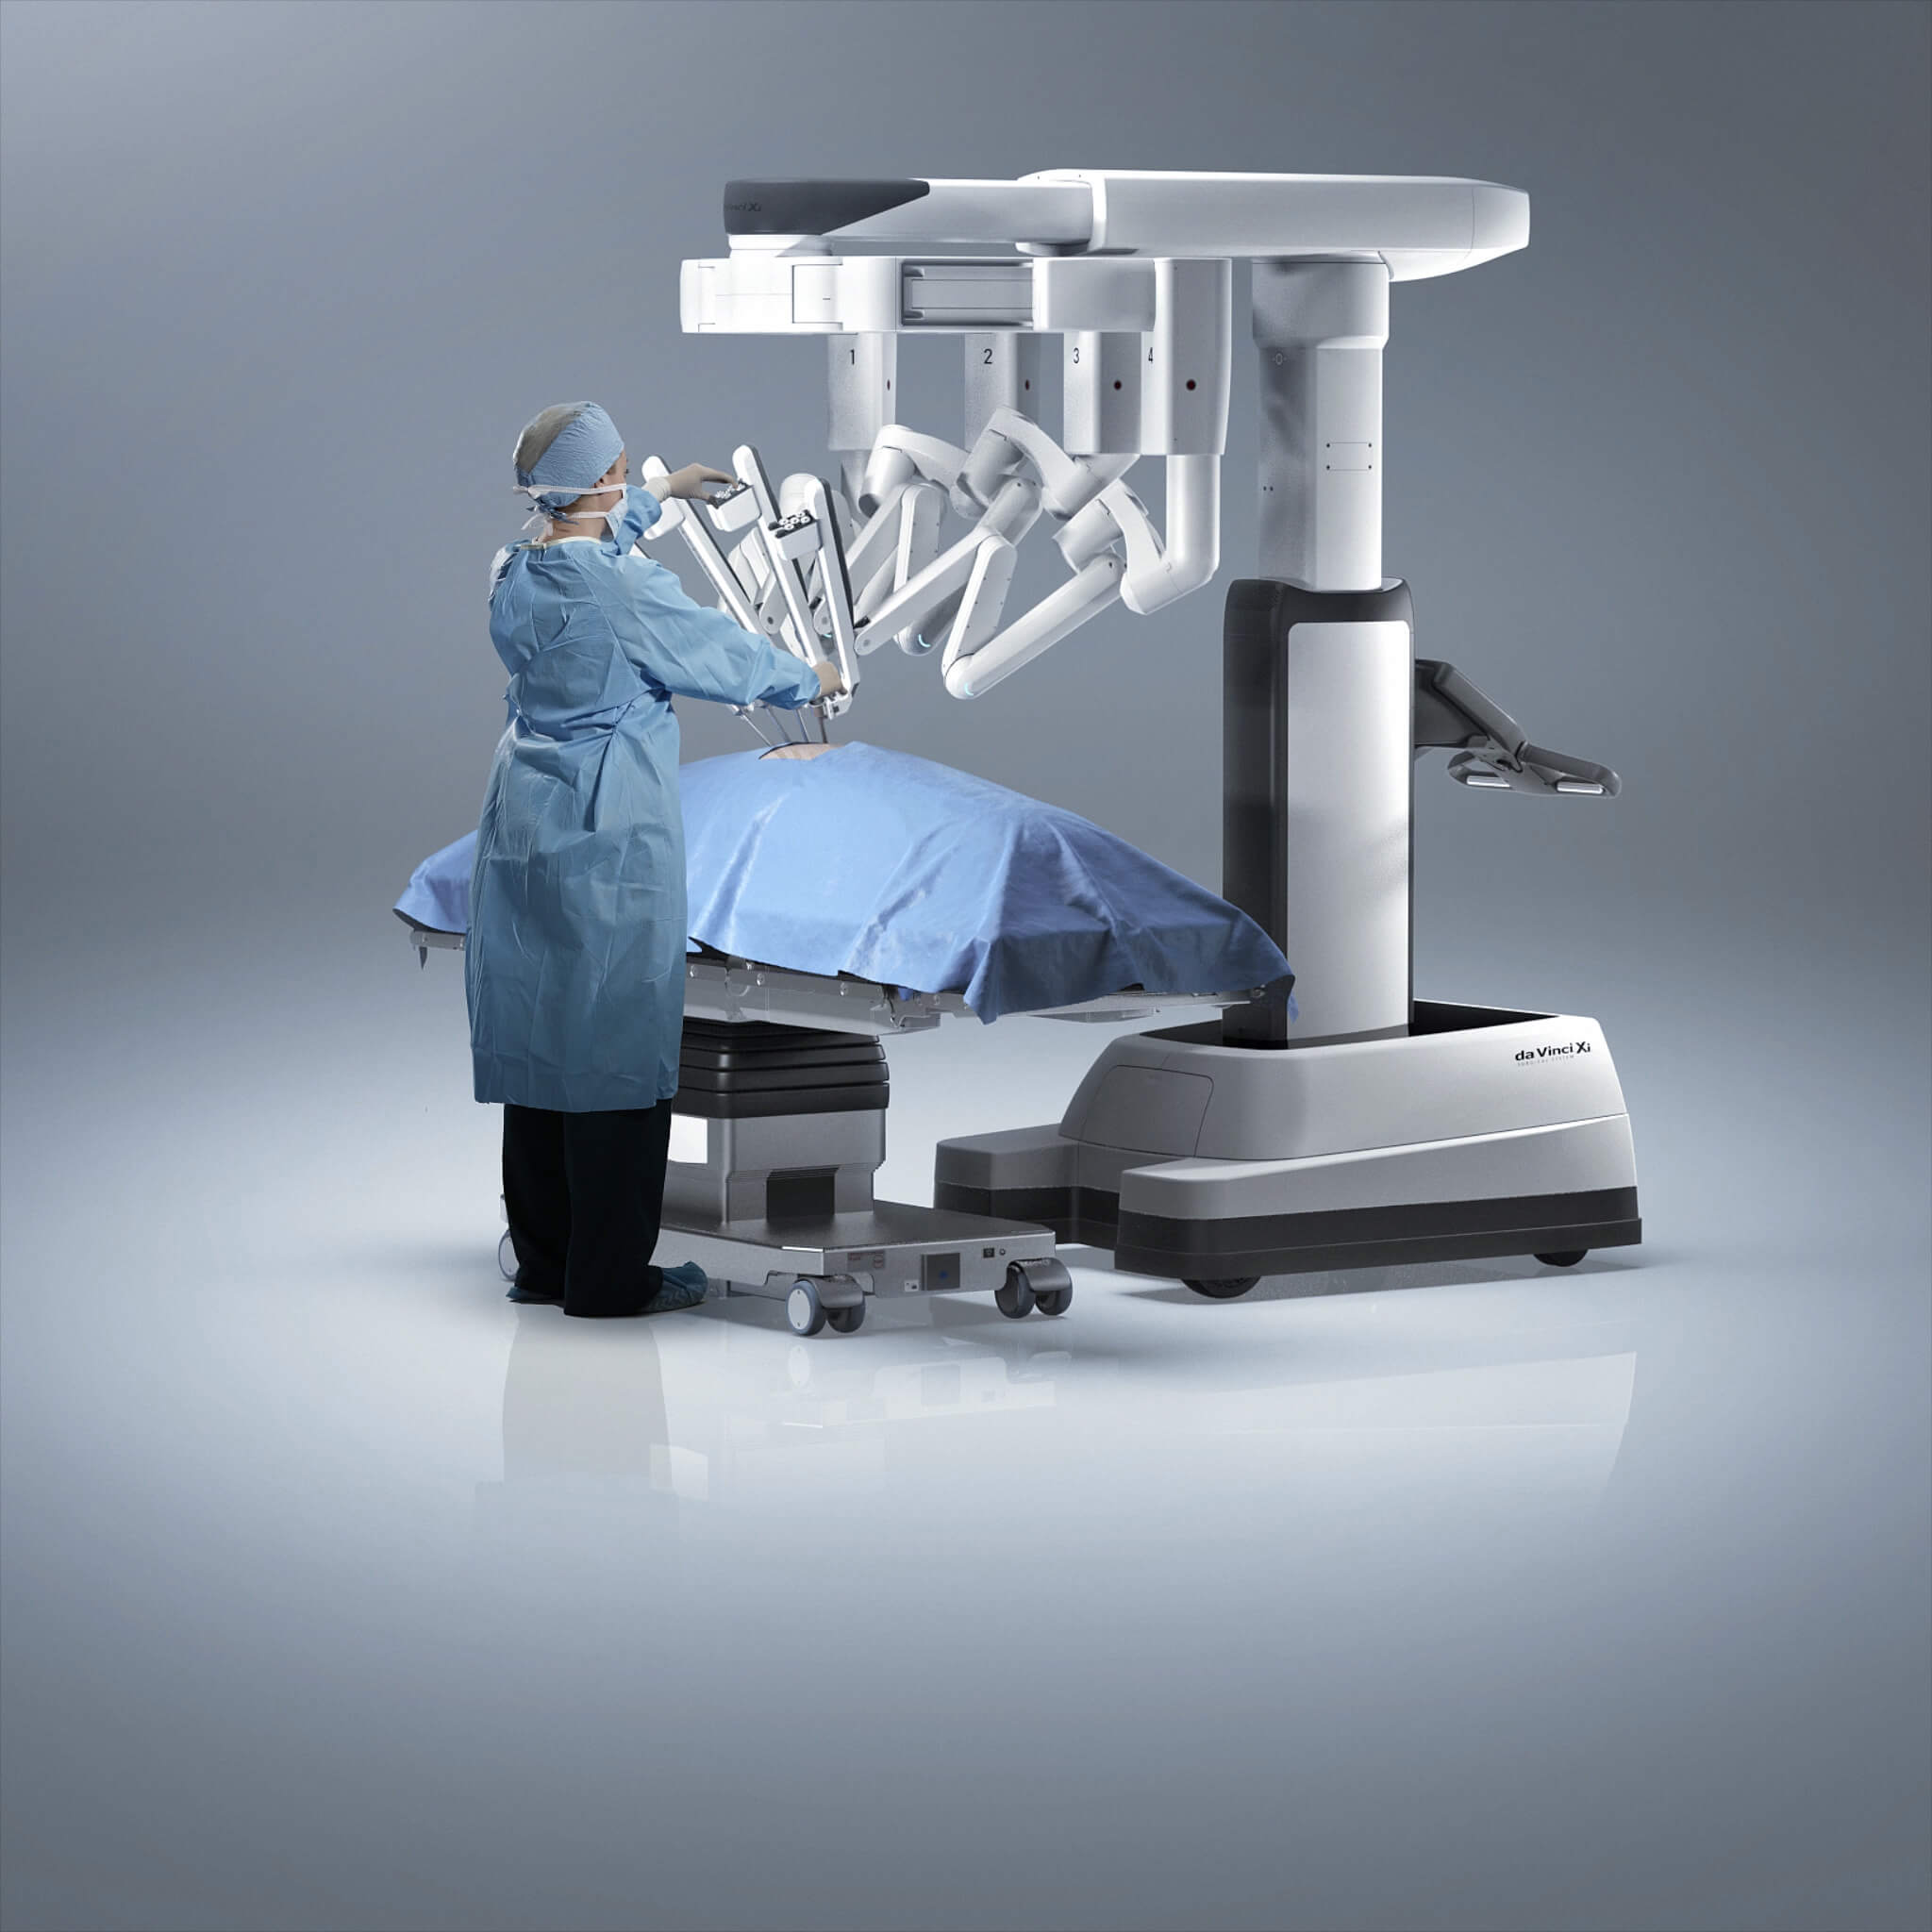 Intuitive Surgical Revolutionary Anatomical Access